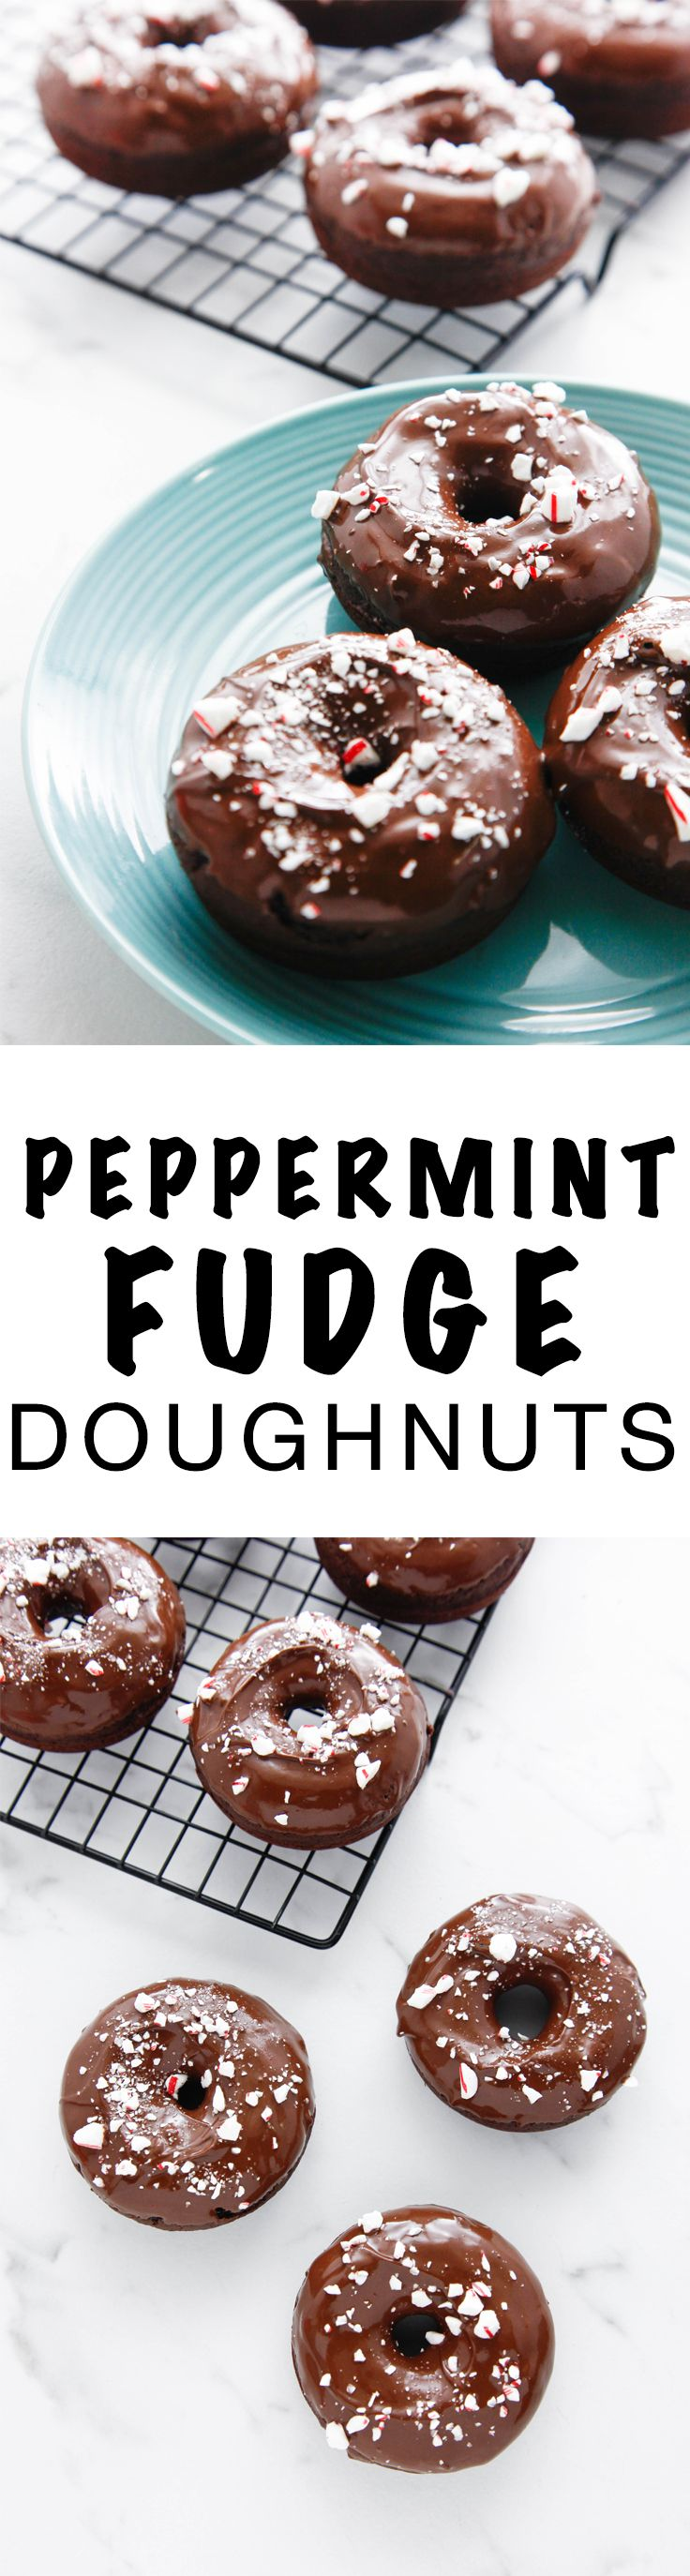 Peppermint Fudge Doughnuts perfect for Christmas and all winter celebrations! Perfect for Christmas or dessert! via @thebrooklyncook